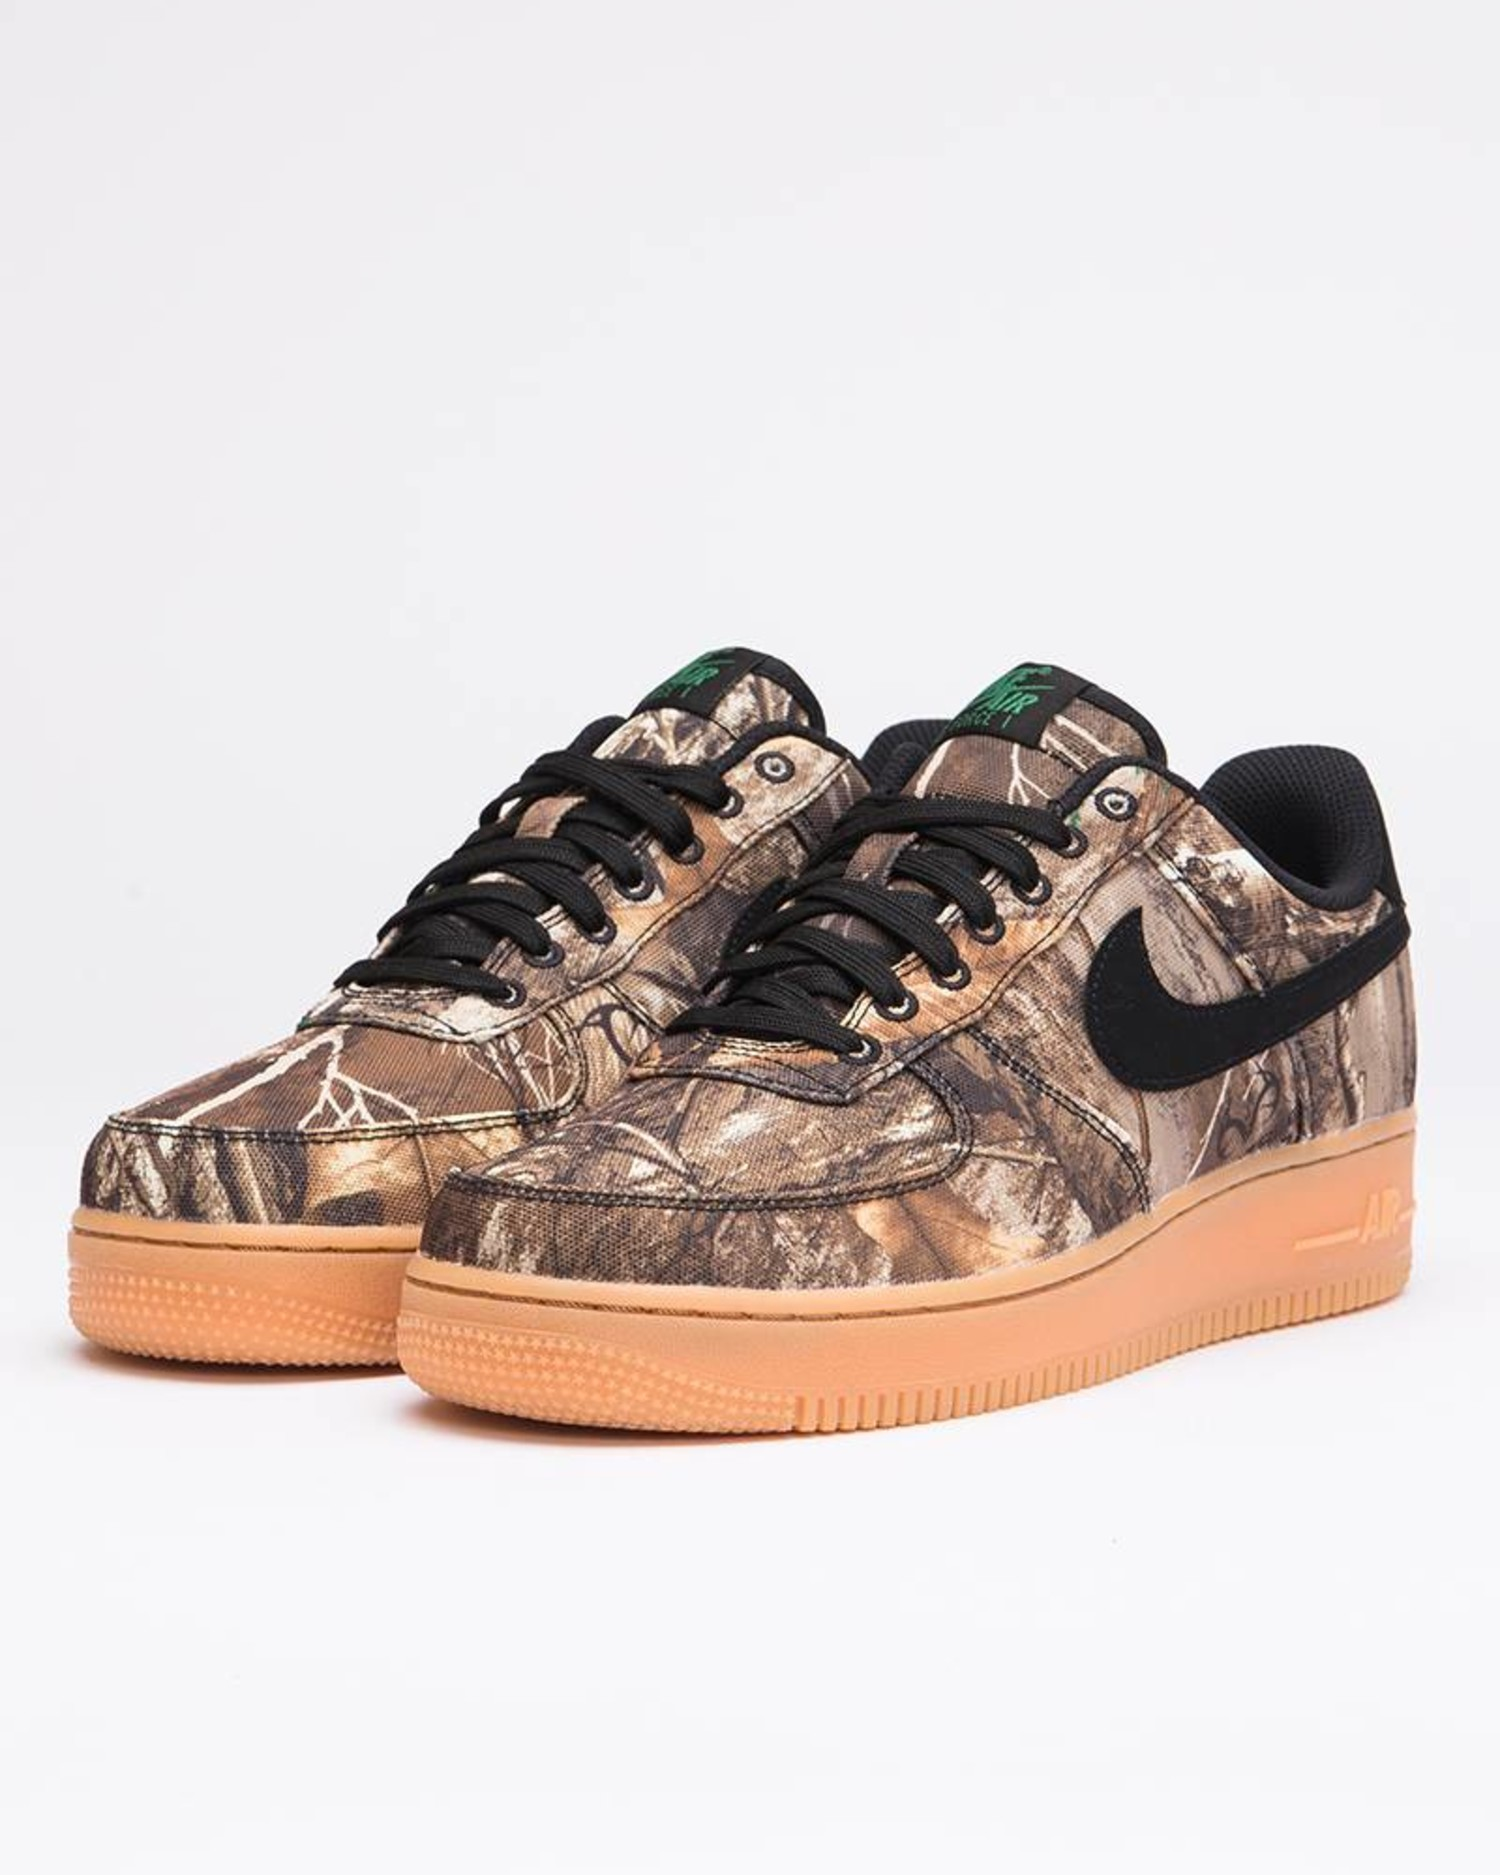 Nike Air force 1 '07 Woodland Camo by Realtree